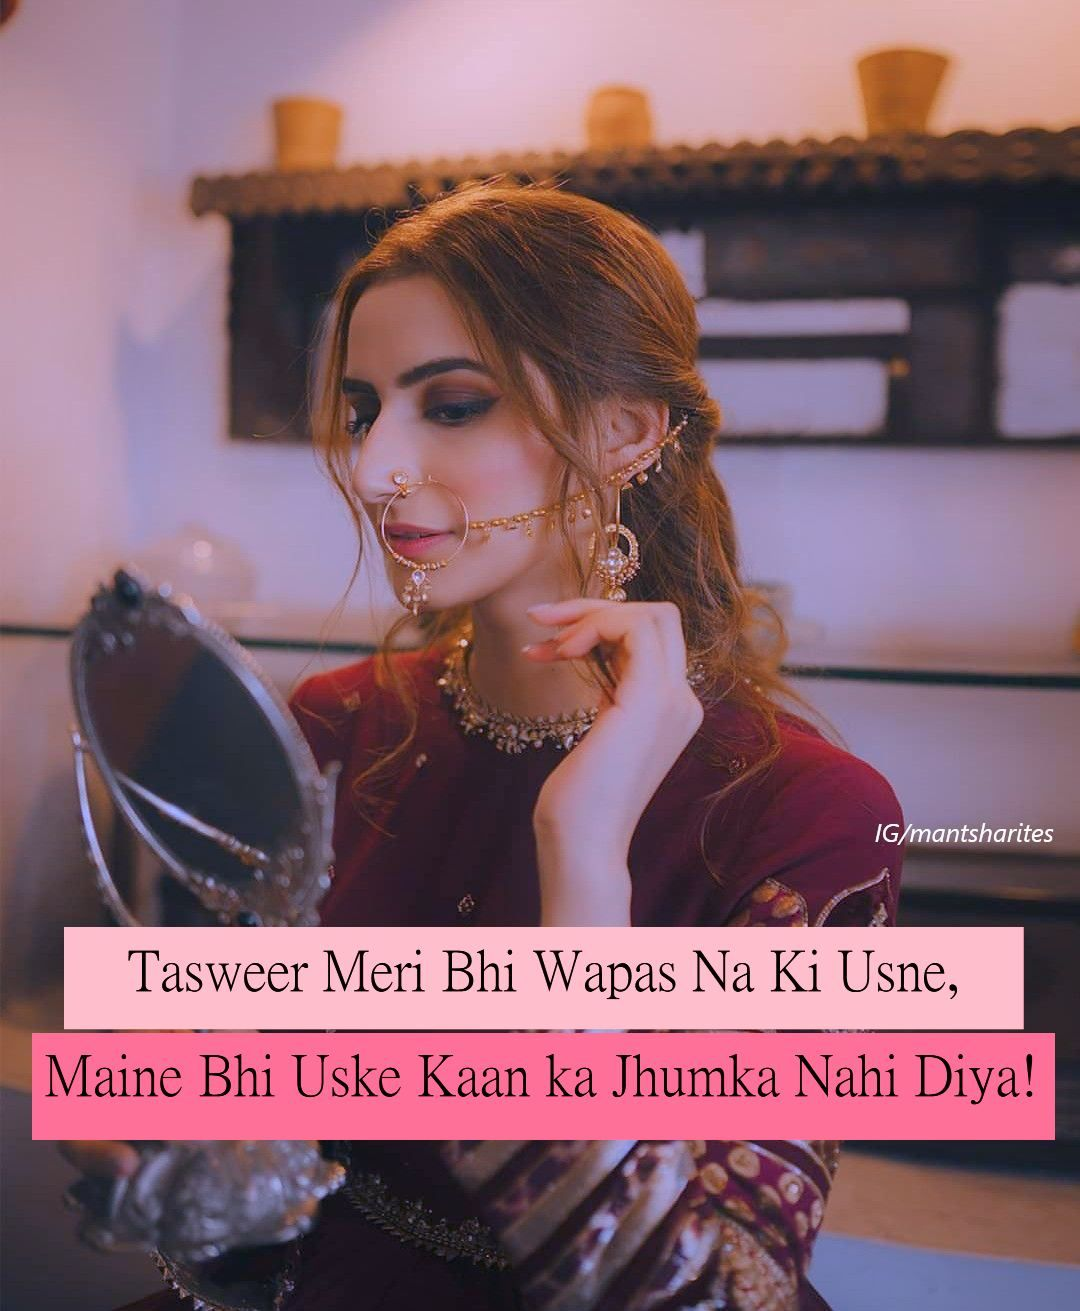 Romantic Shayari Romantic Shayari Jhumka Romantic Amazing quotes to bring inspiration, personal growth, love and happiness to your everyday life. romantic shayari romantic shayari